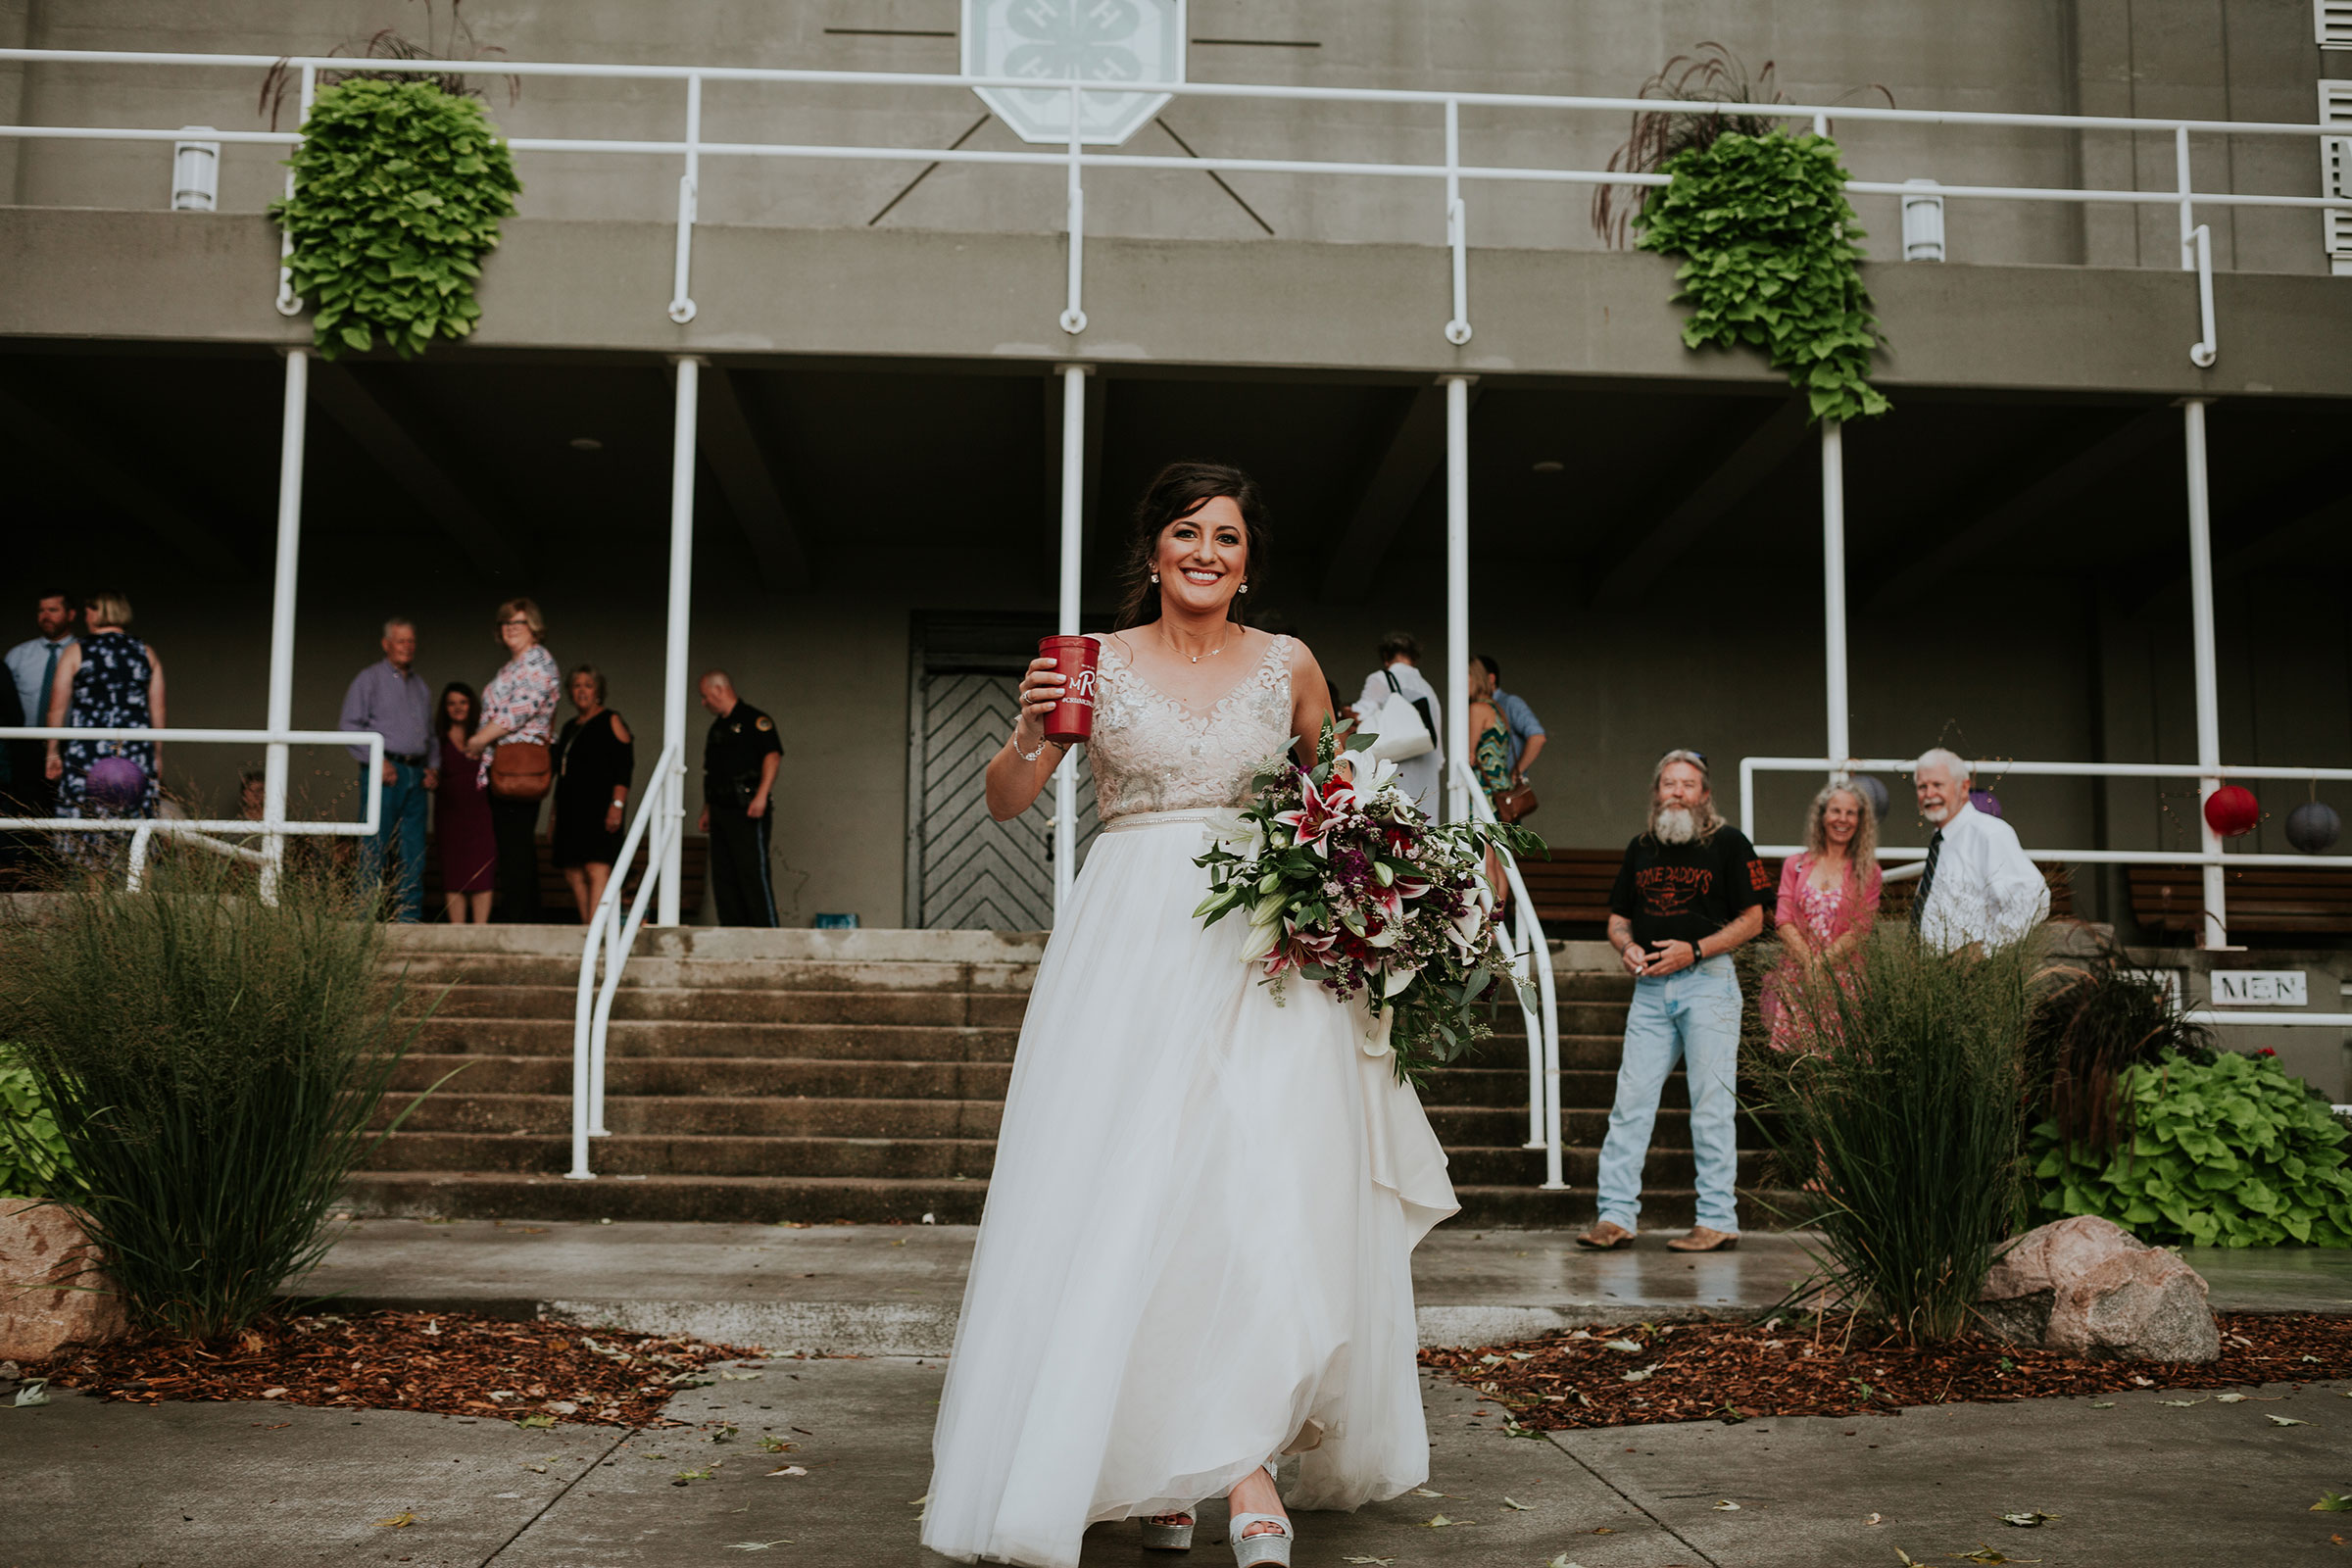 bride-holding-a-drink-and-running-to-party-bus-iowa-state-fairgrounds-desmoines-iowa-raelyn-ramey-photography.jpg